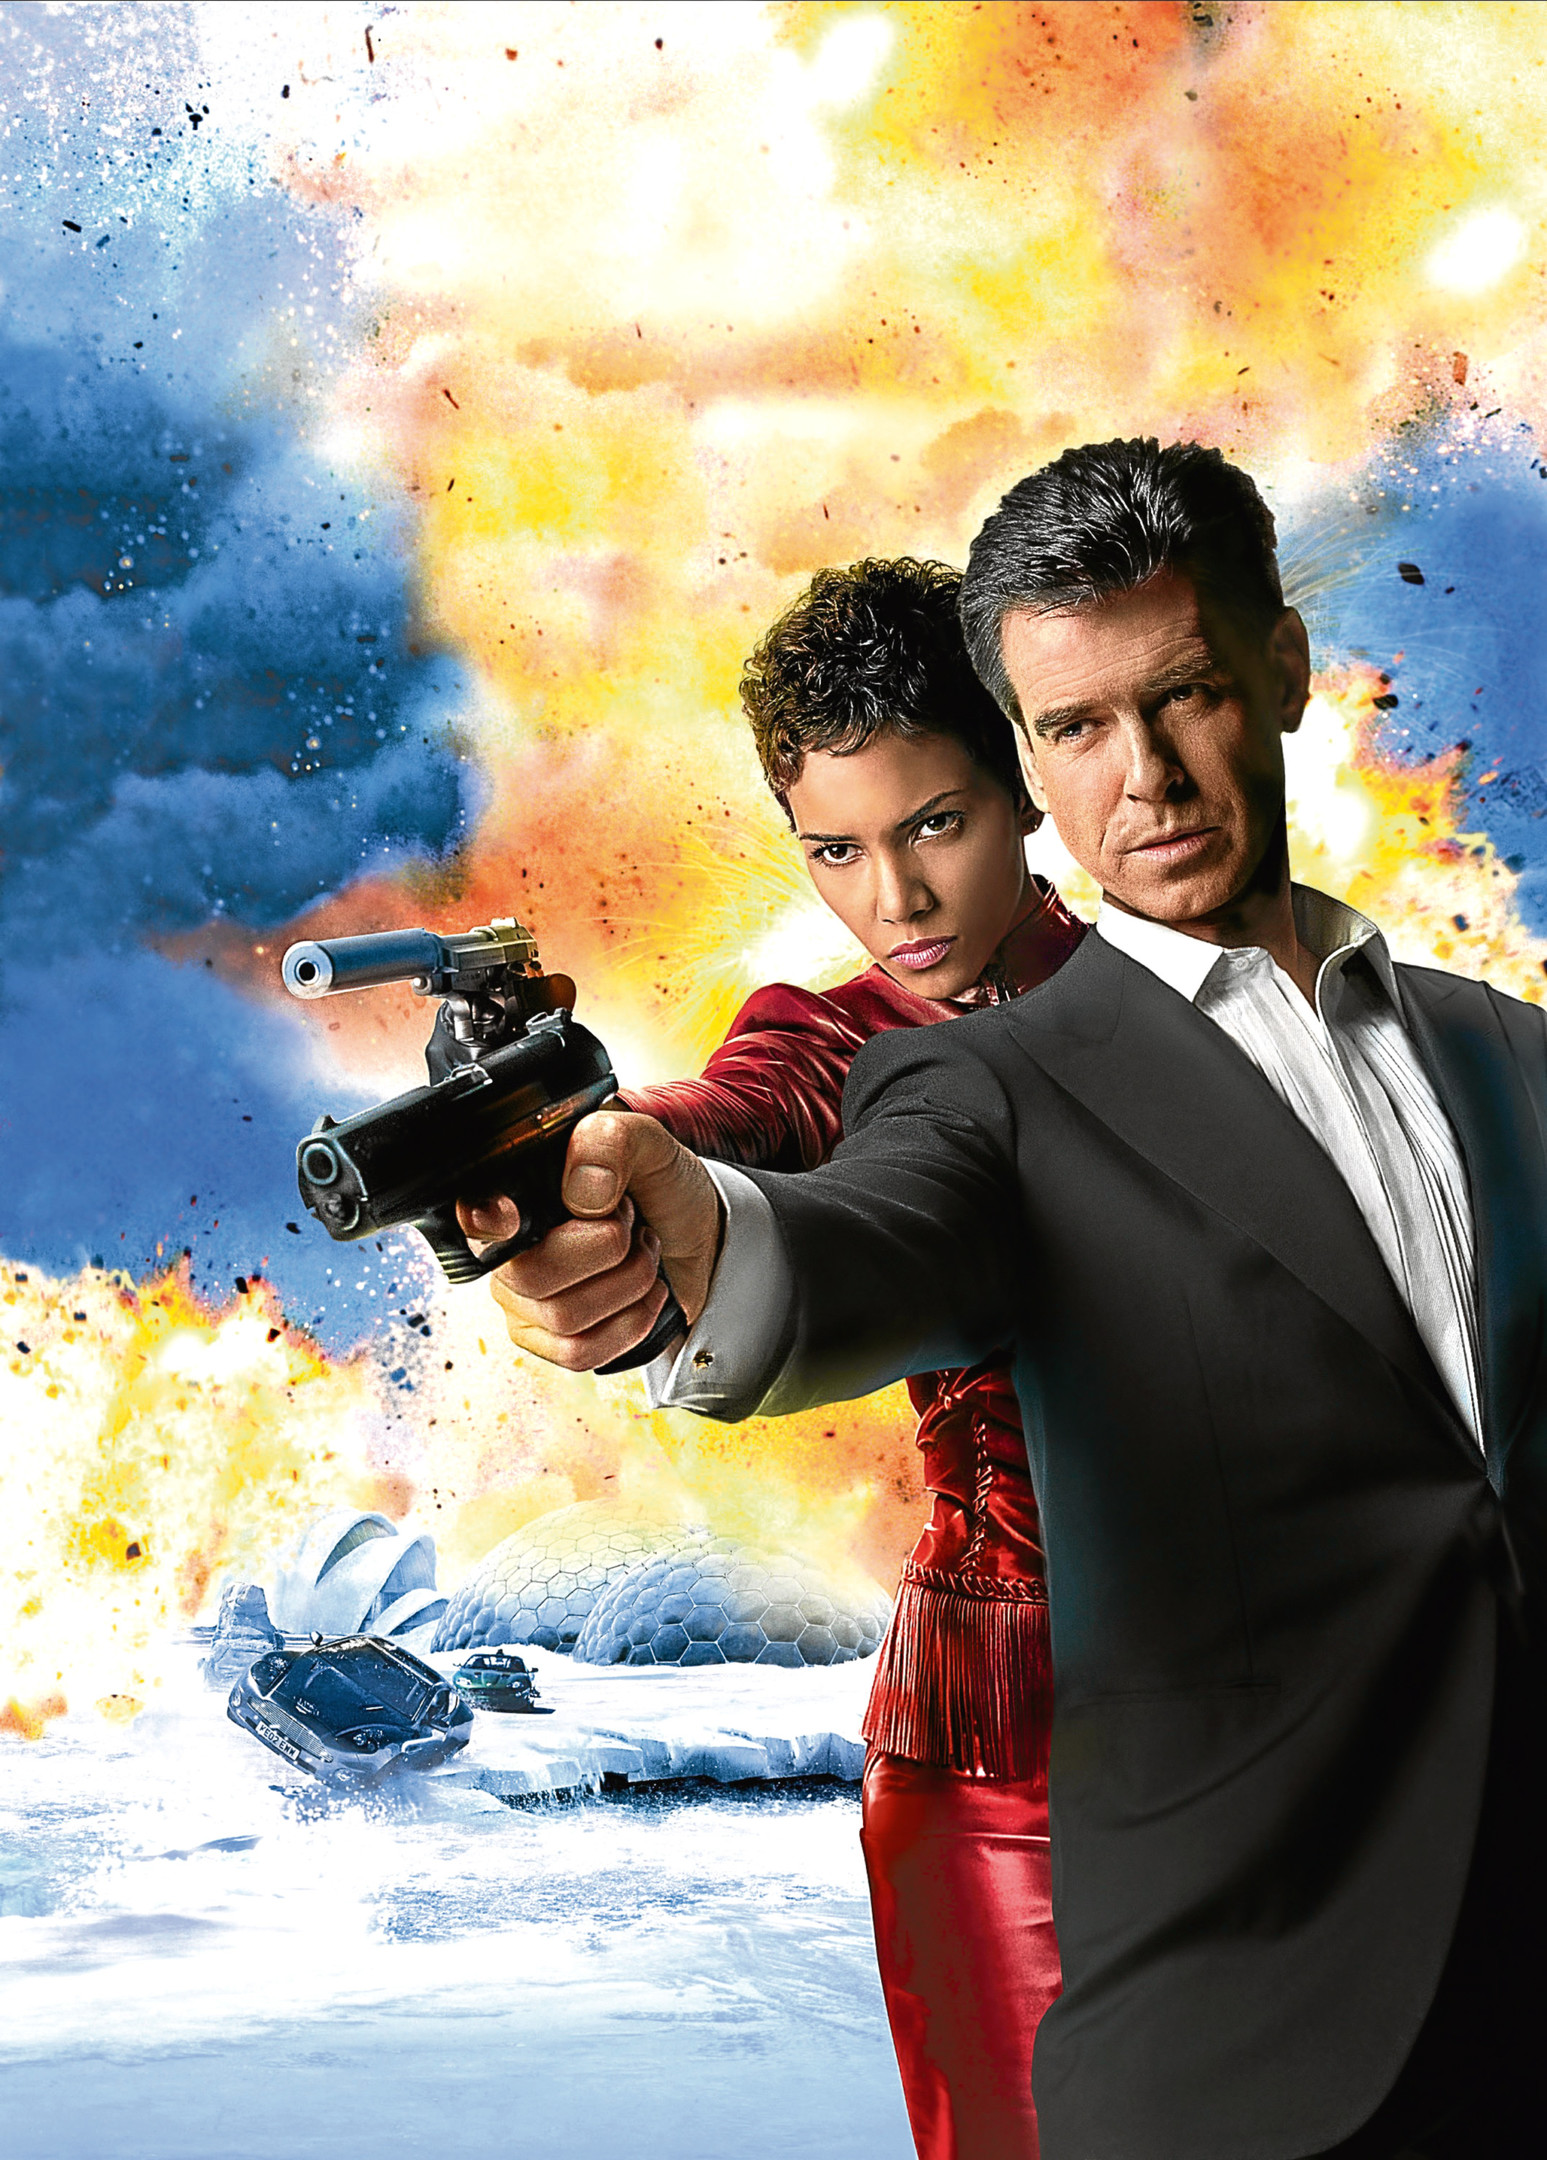 Die Another Day, 2002 (Allstar/UNITED ARTISTS)